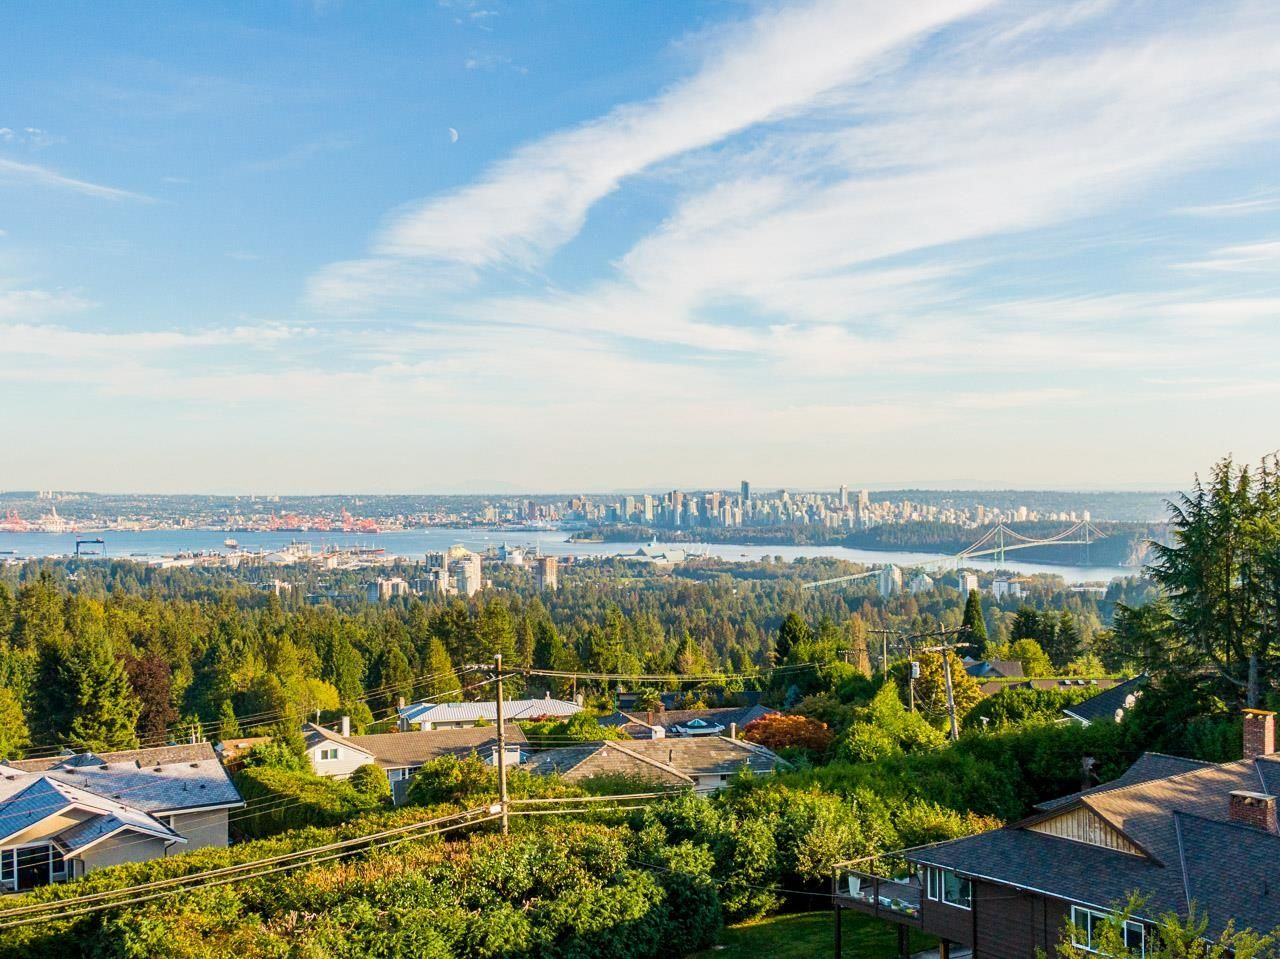 Main Photo: 875 EYREMOUNT Drive in West Vancouver: British Properties House for sale : MLS®# R2618624